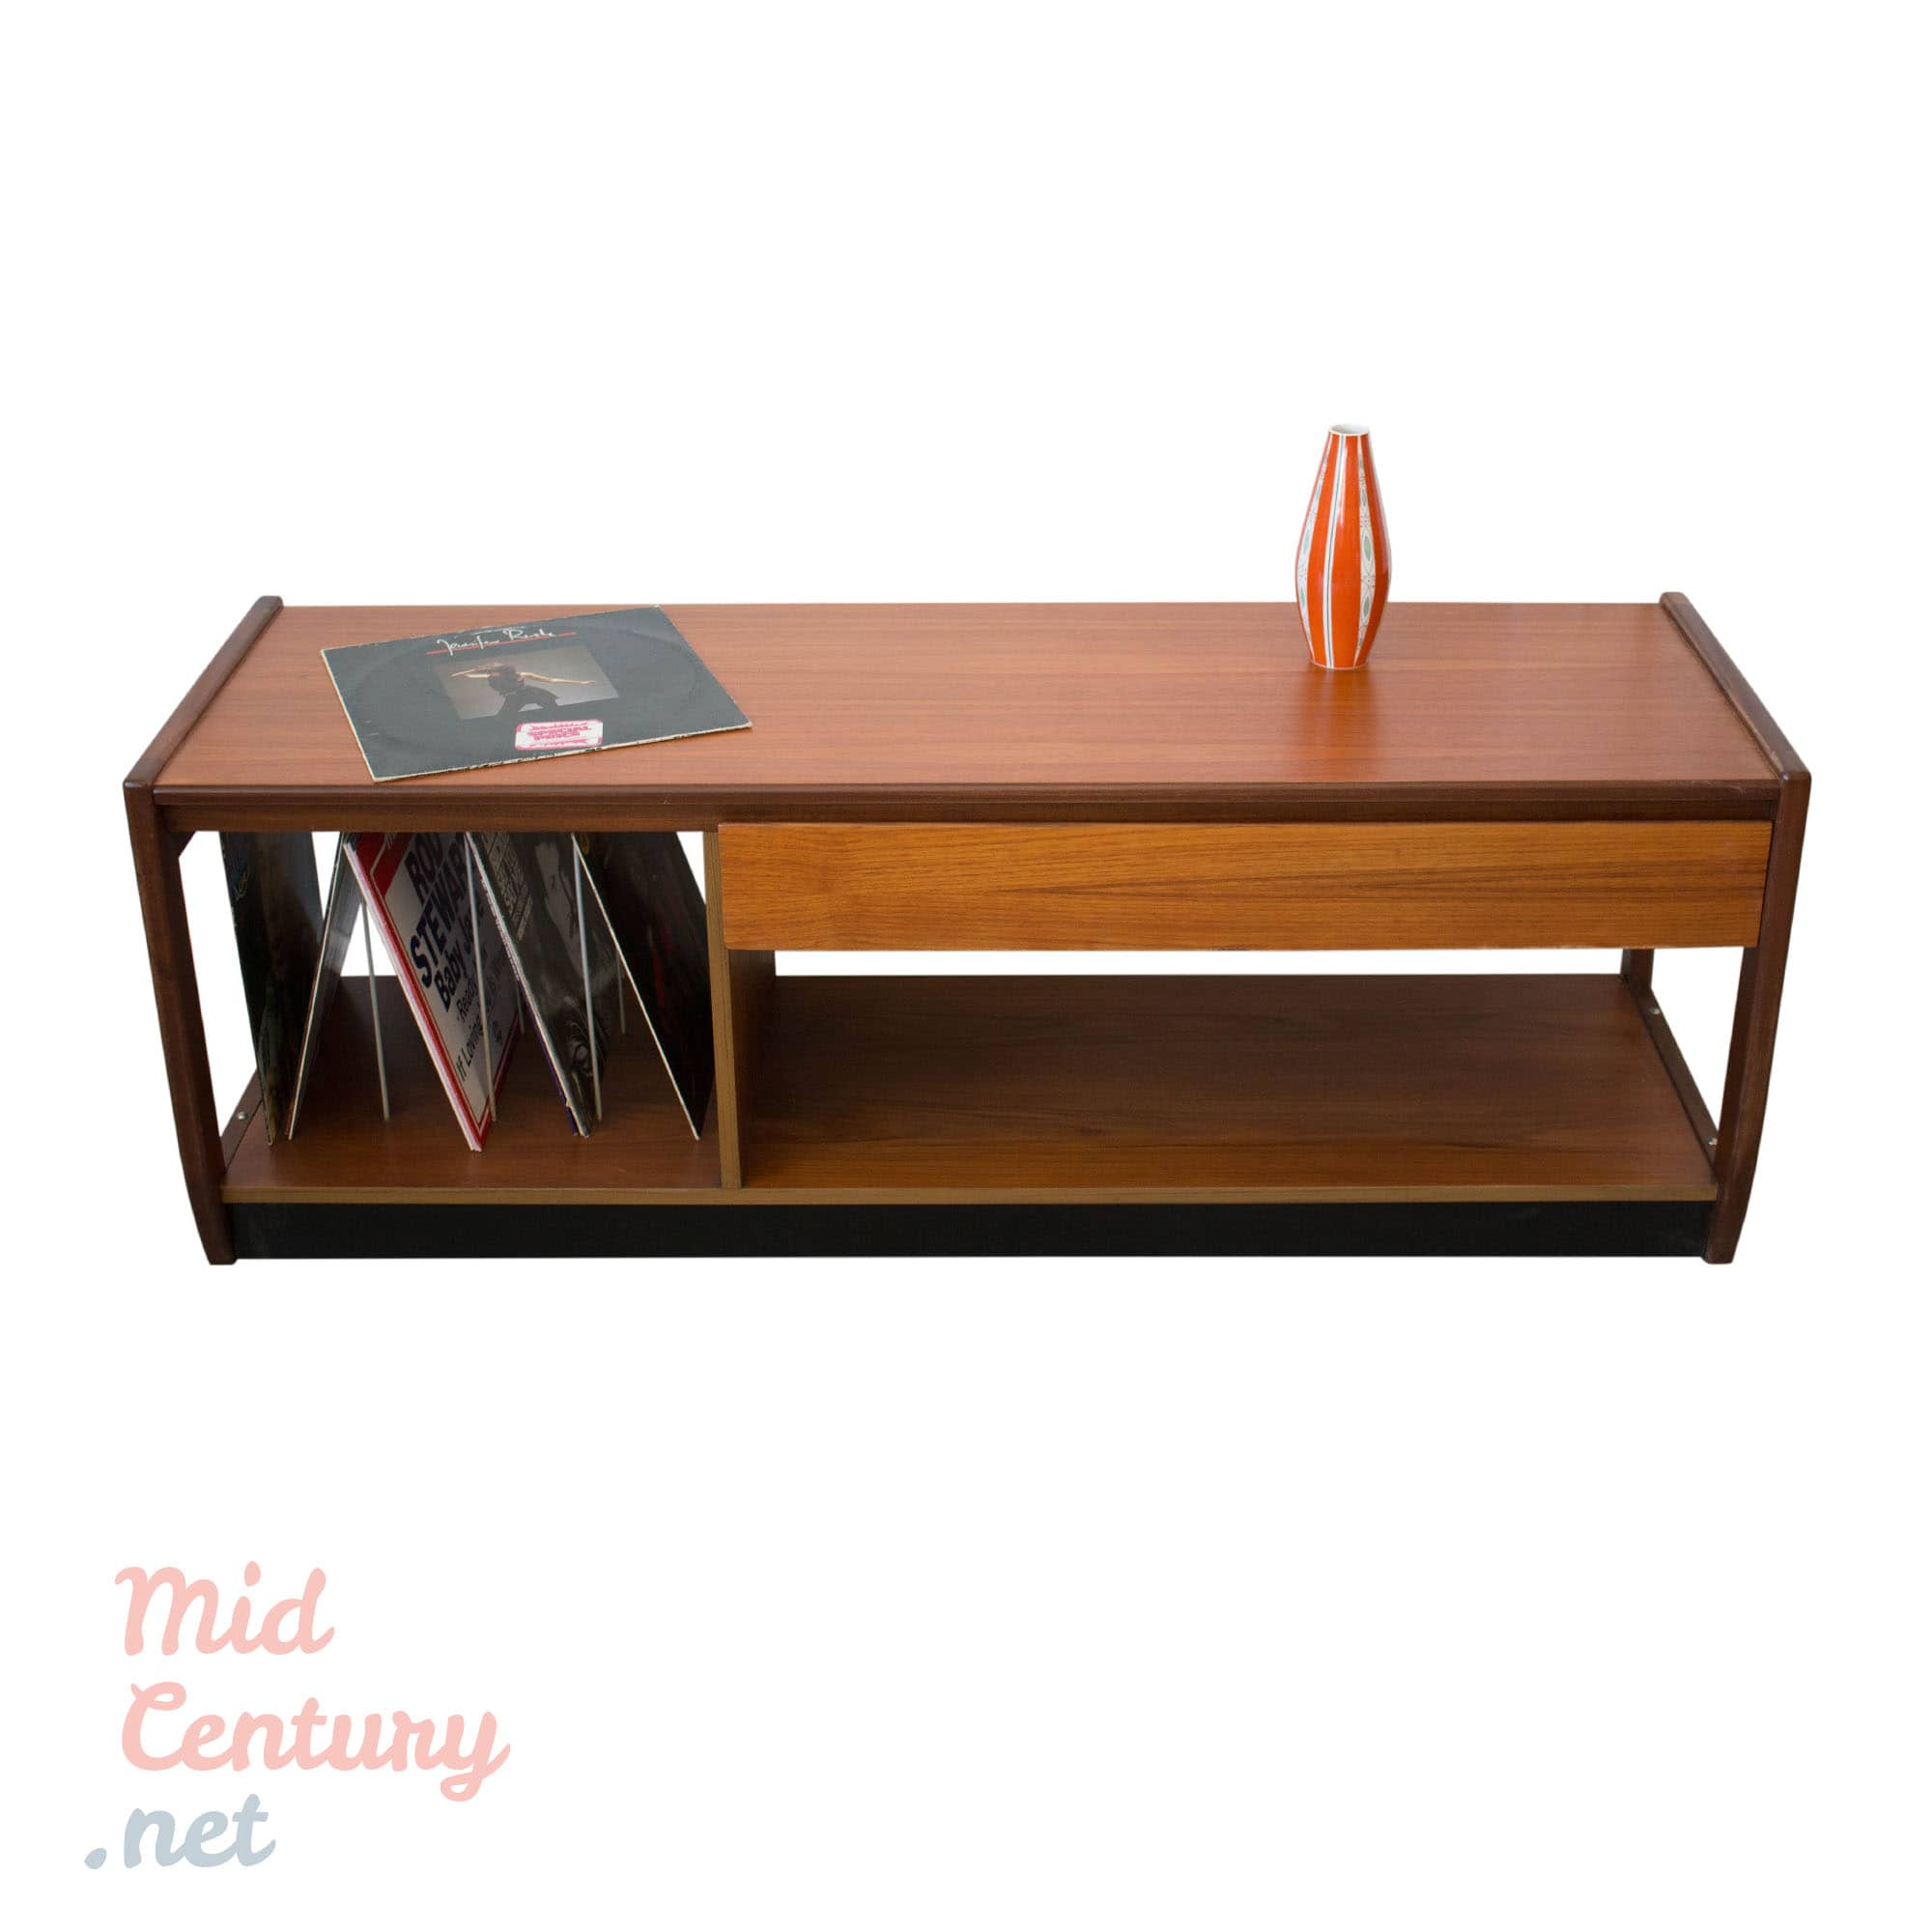 Beautiful TV sideboard from the 1960s